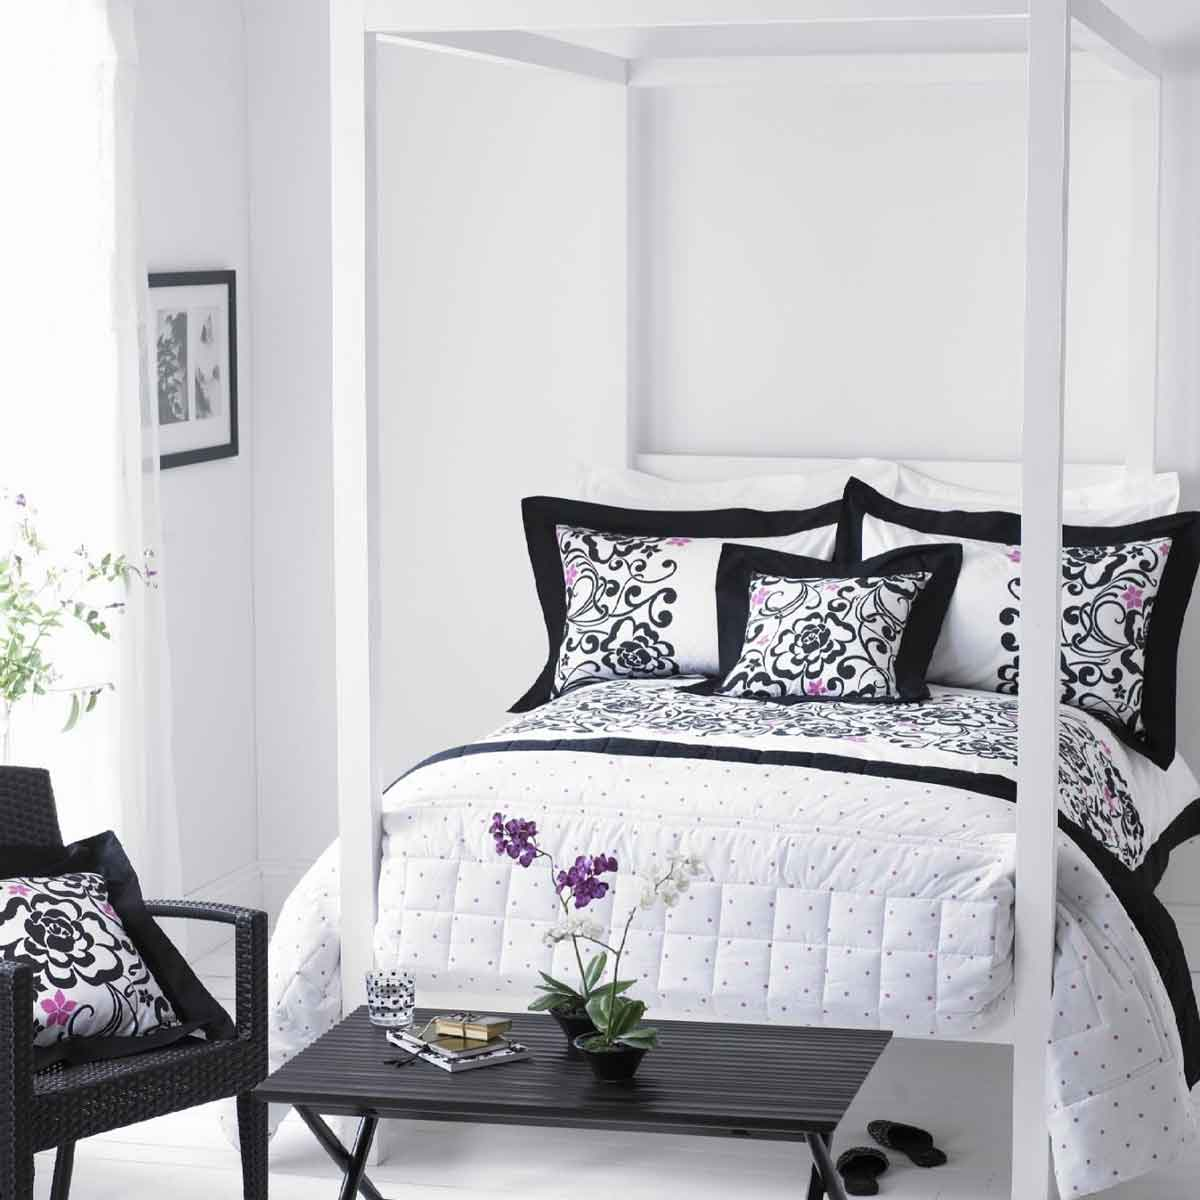 title | Black And White Bedroom Ideas